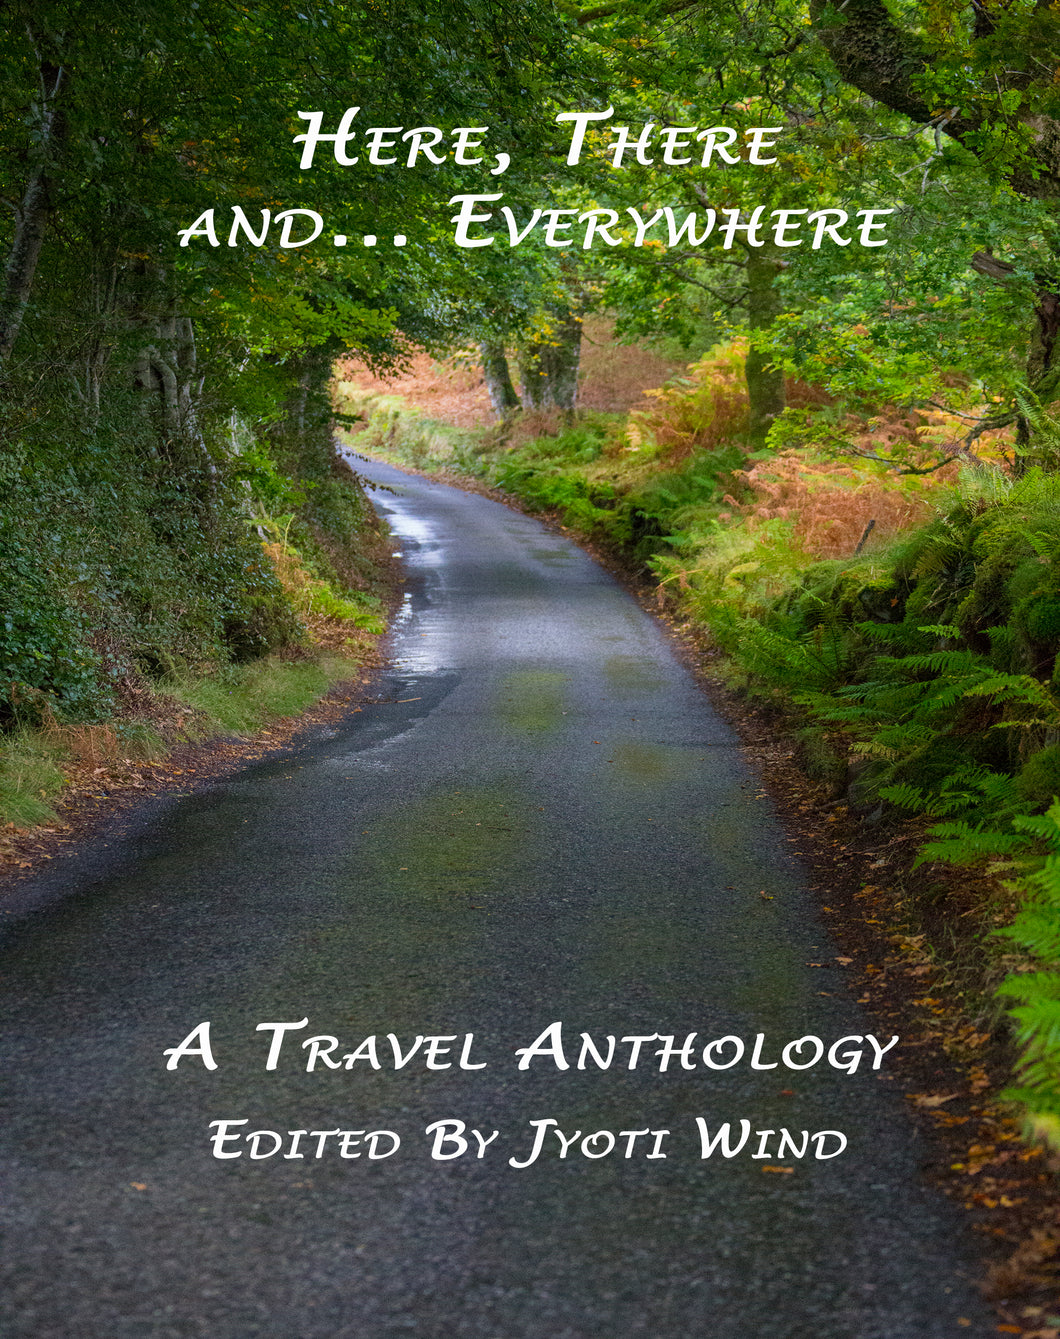 Here, There and... Everywhere: A Travel Anthology (Edited by Jyoti Wind) *USA MADE